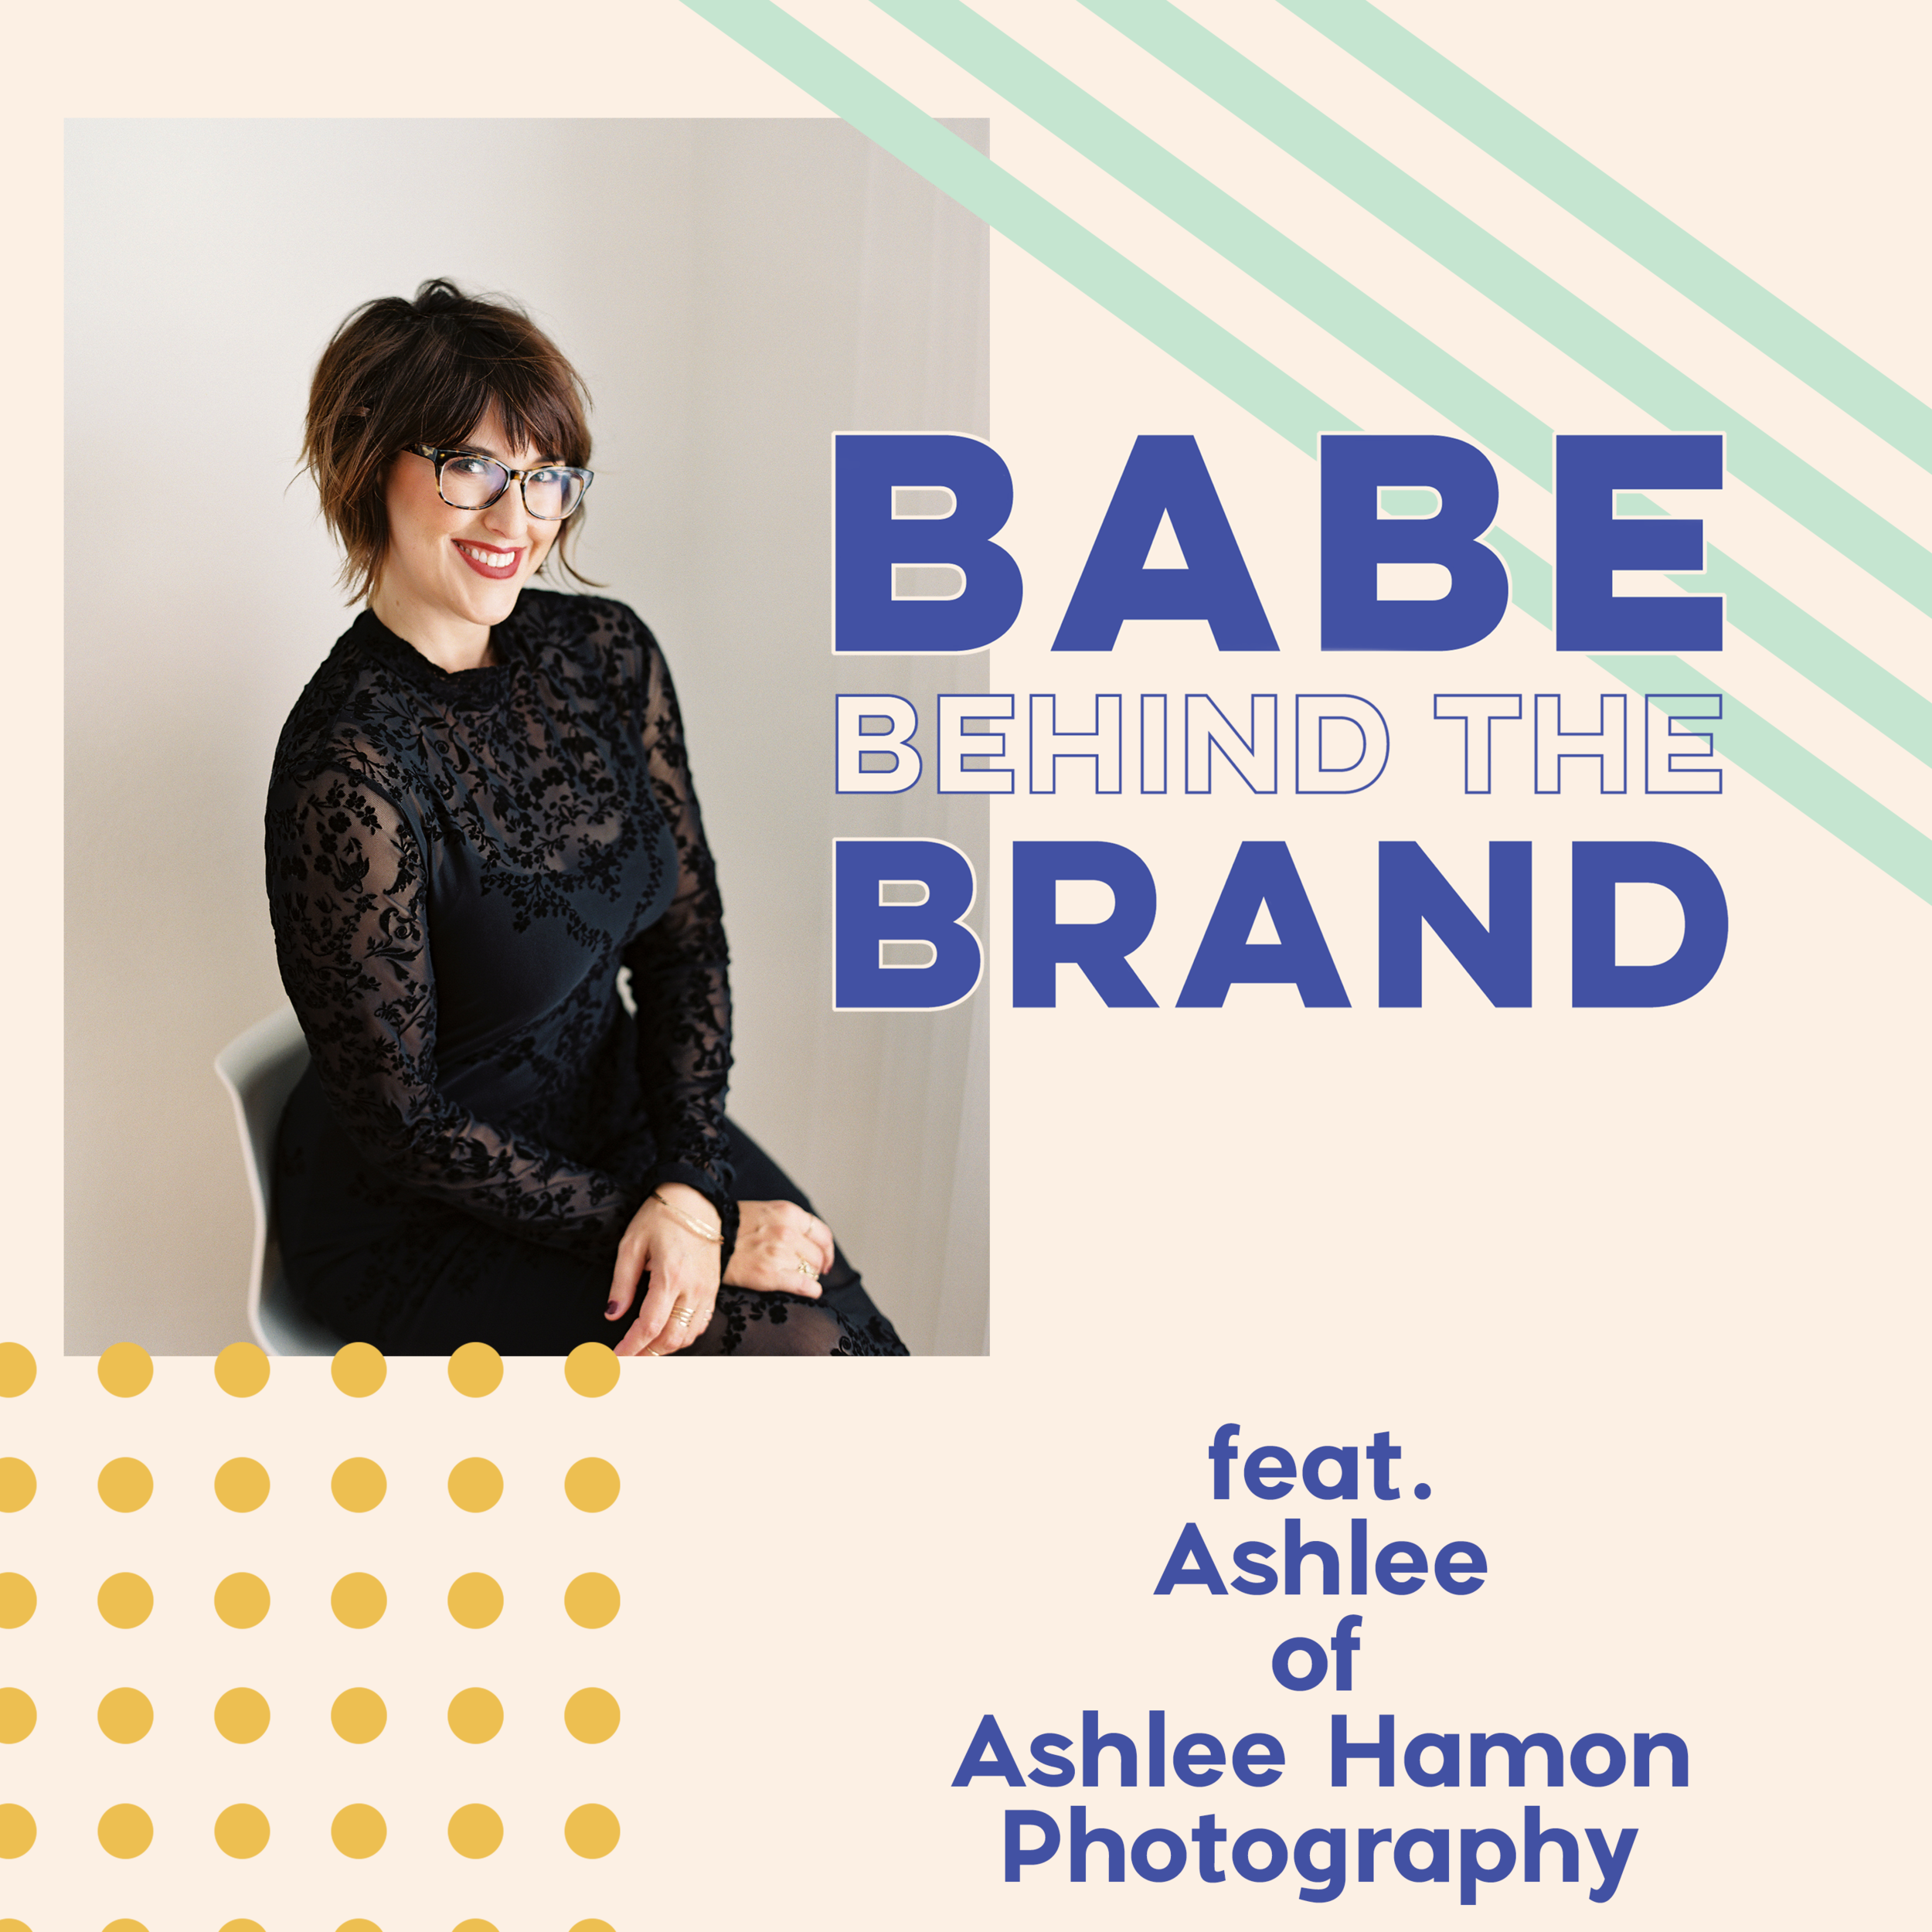 Ashlee-hamon-photography-babe-behind-the-brand-podcast-babe-crafted.png